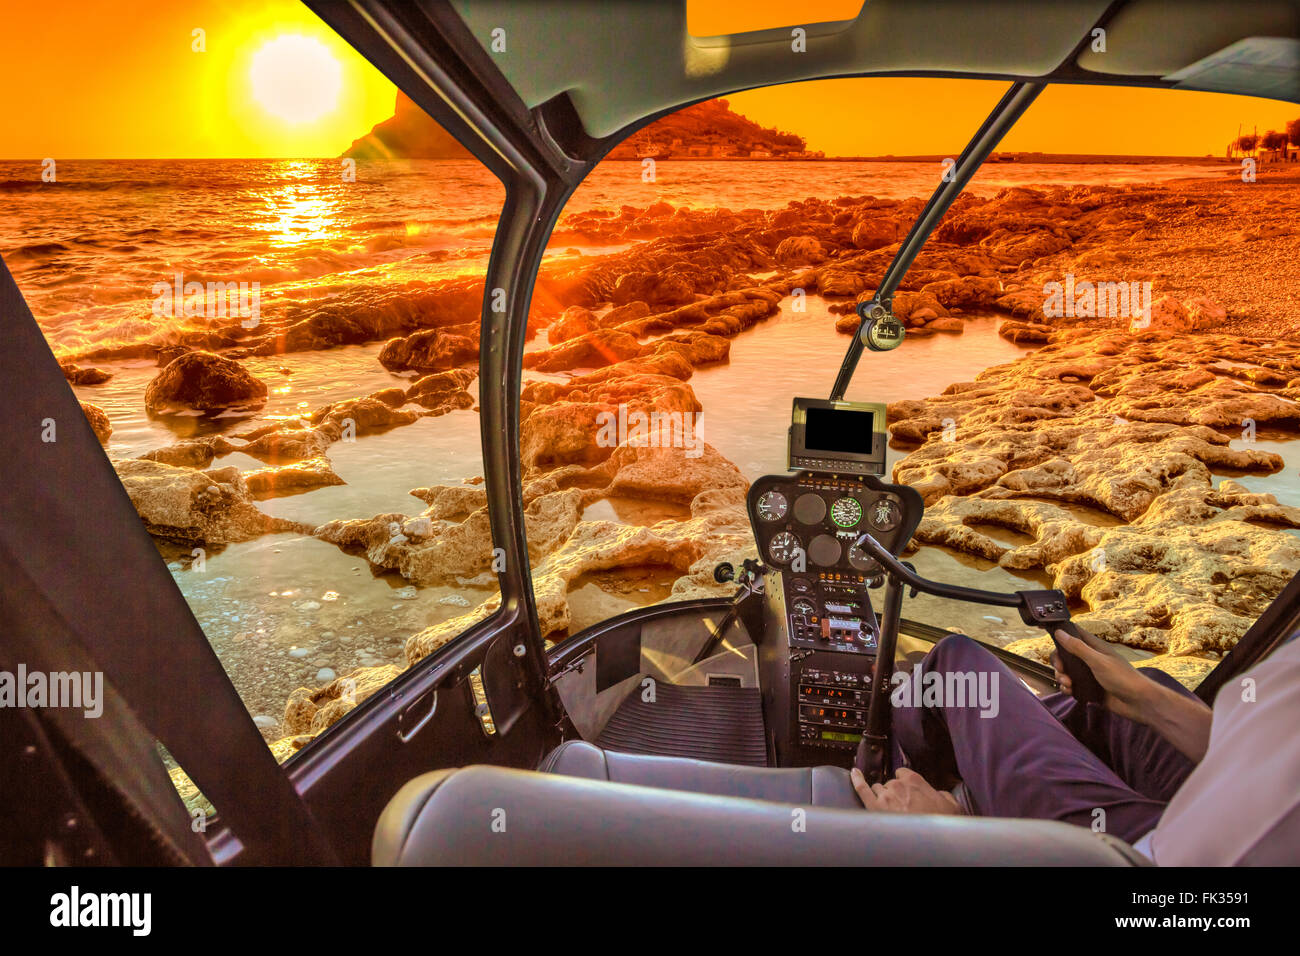 Helicopter Cockpit on reef - Stock Image